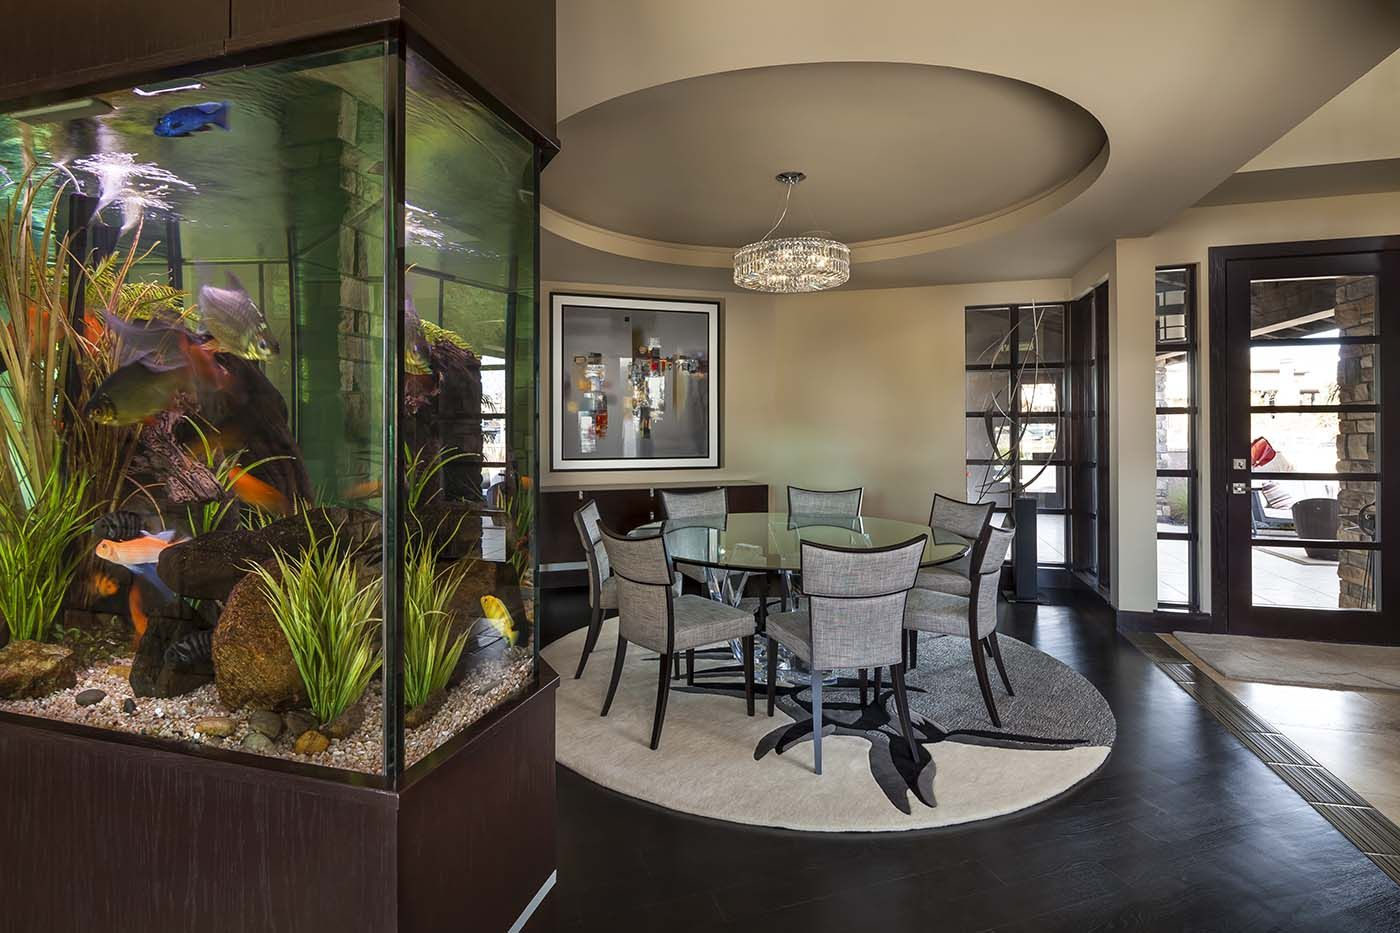 Decorative Fish Tank Ideas: Things To Consider   MidCityEast